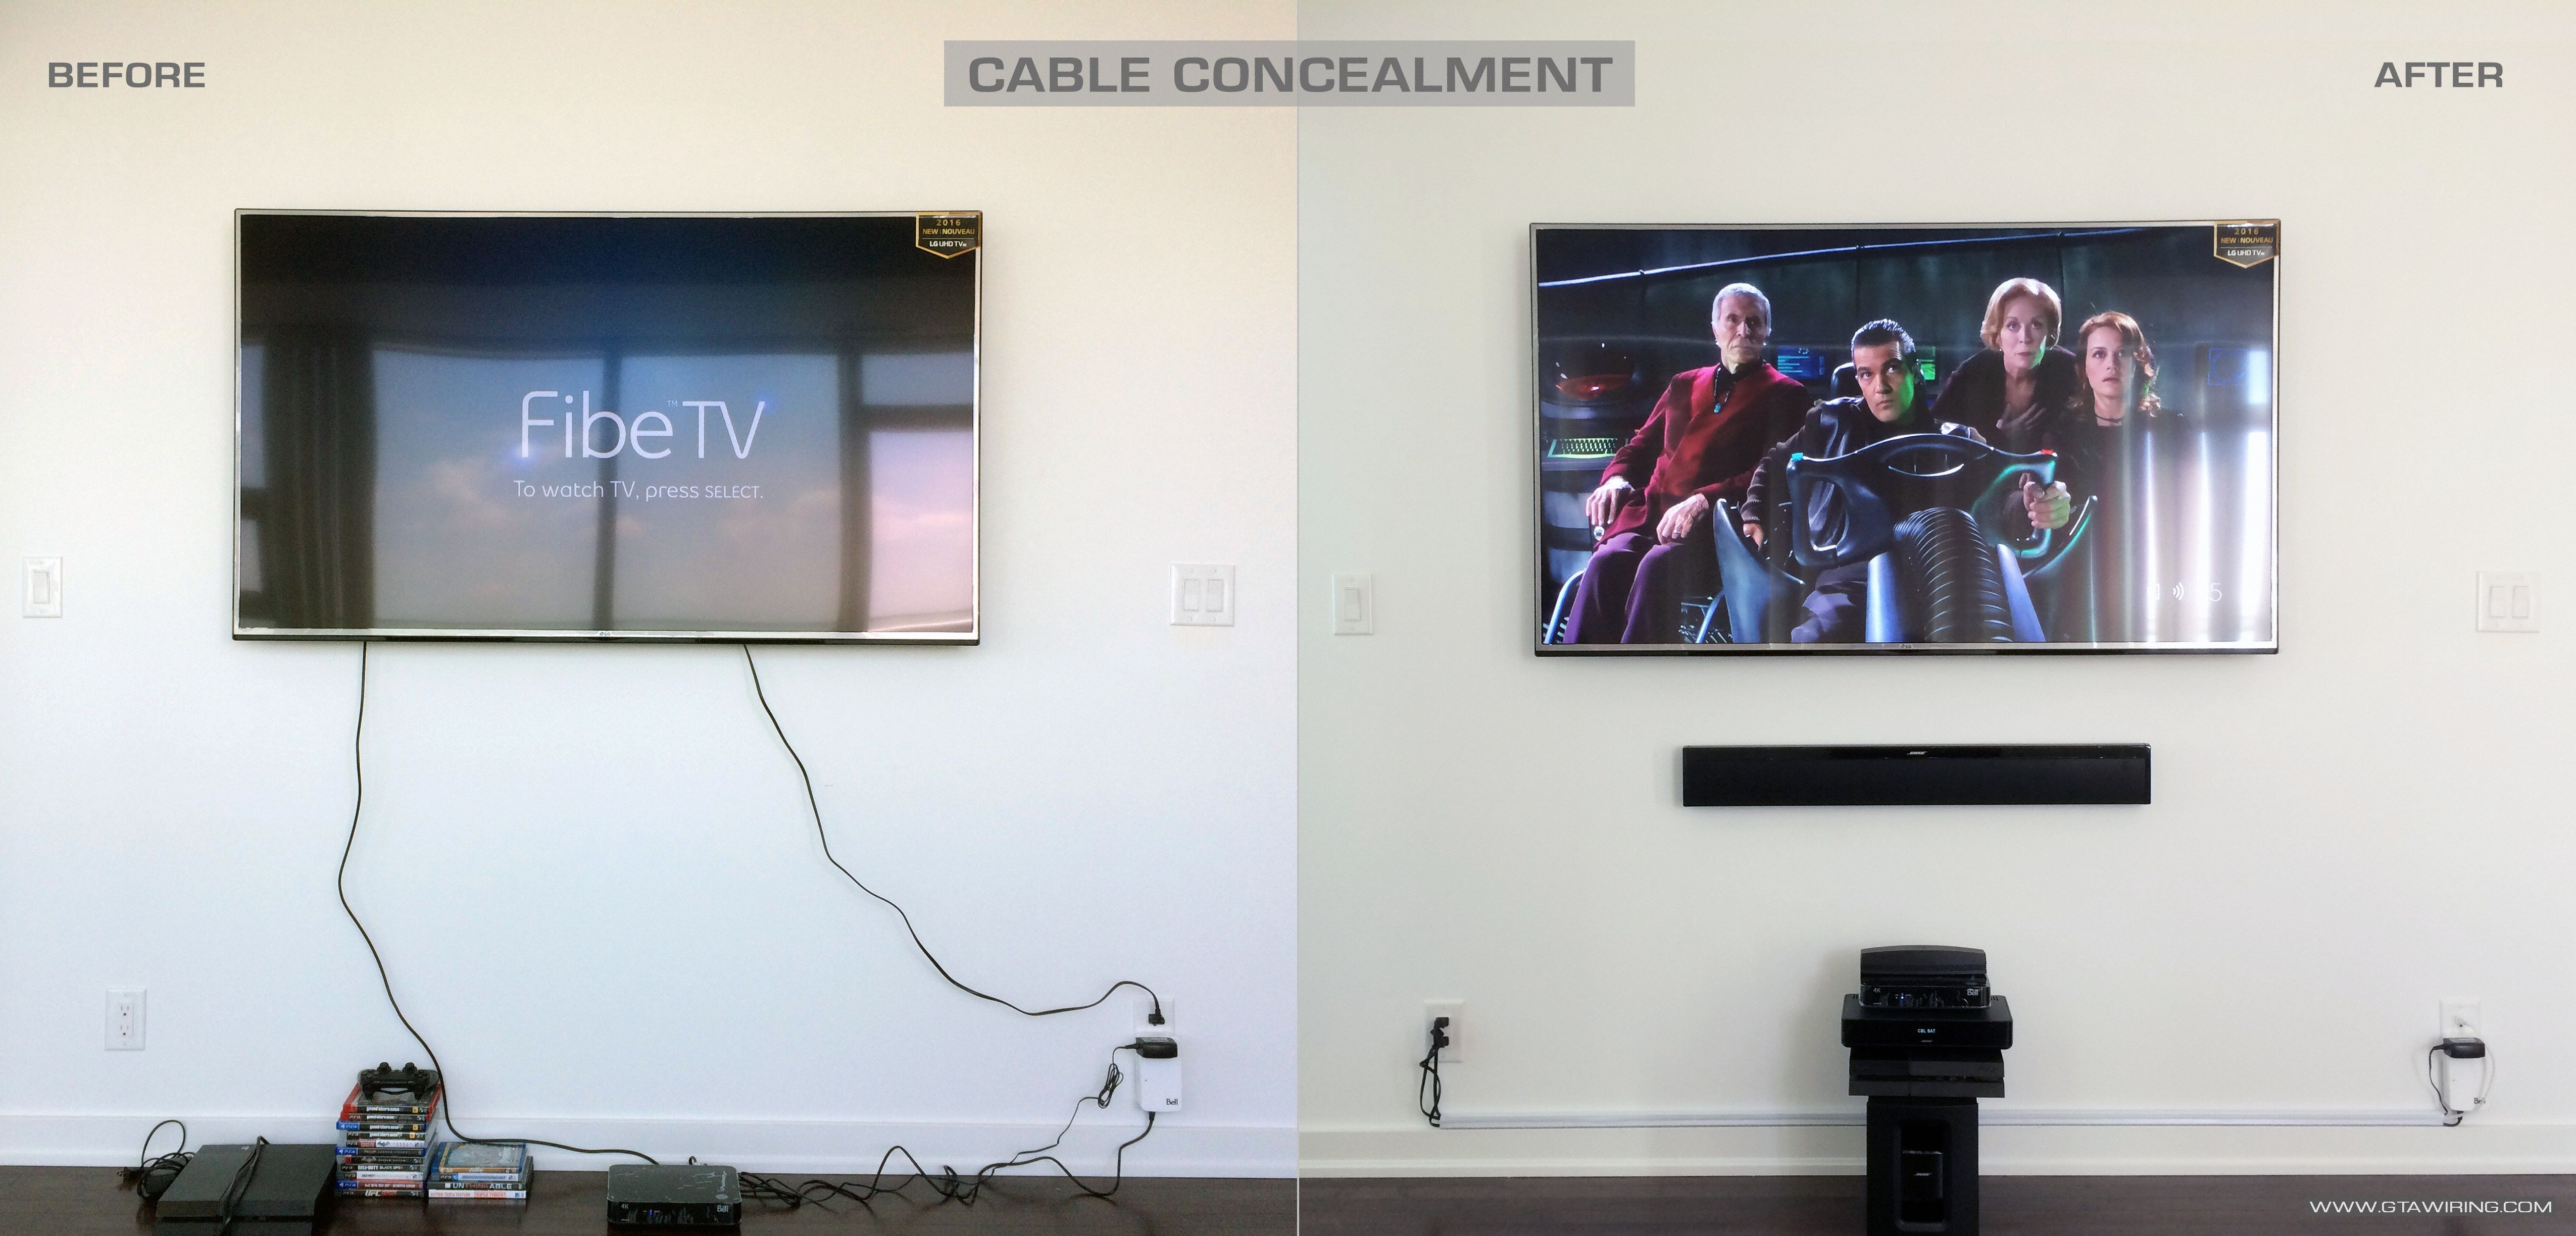 8 best Cable concealment images on Pinterest | Cable, Cabo and Cords